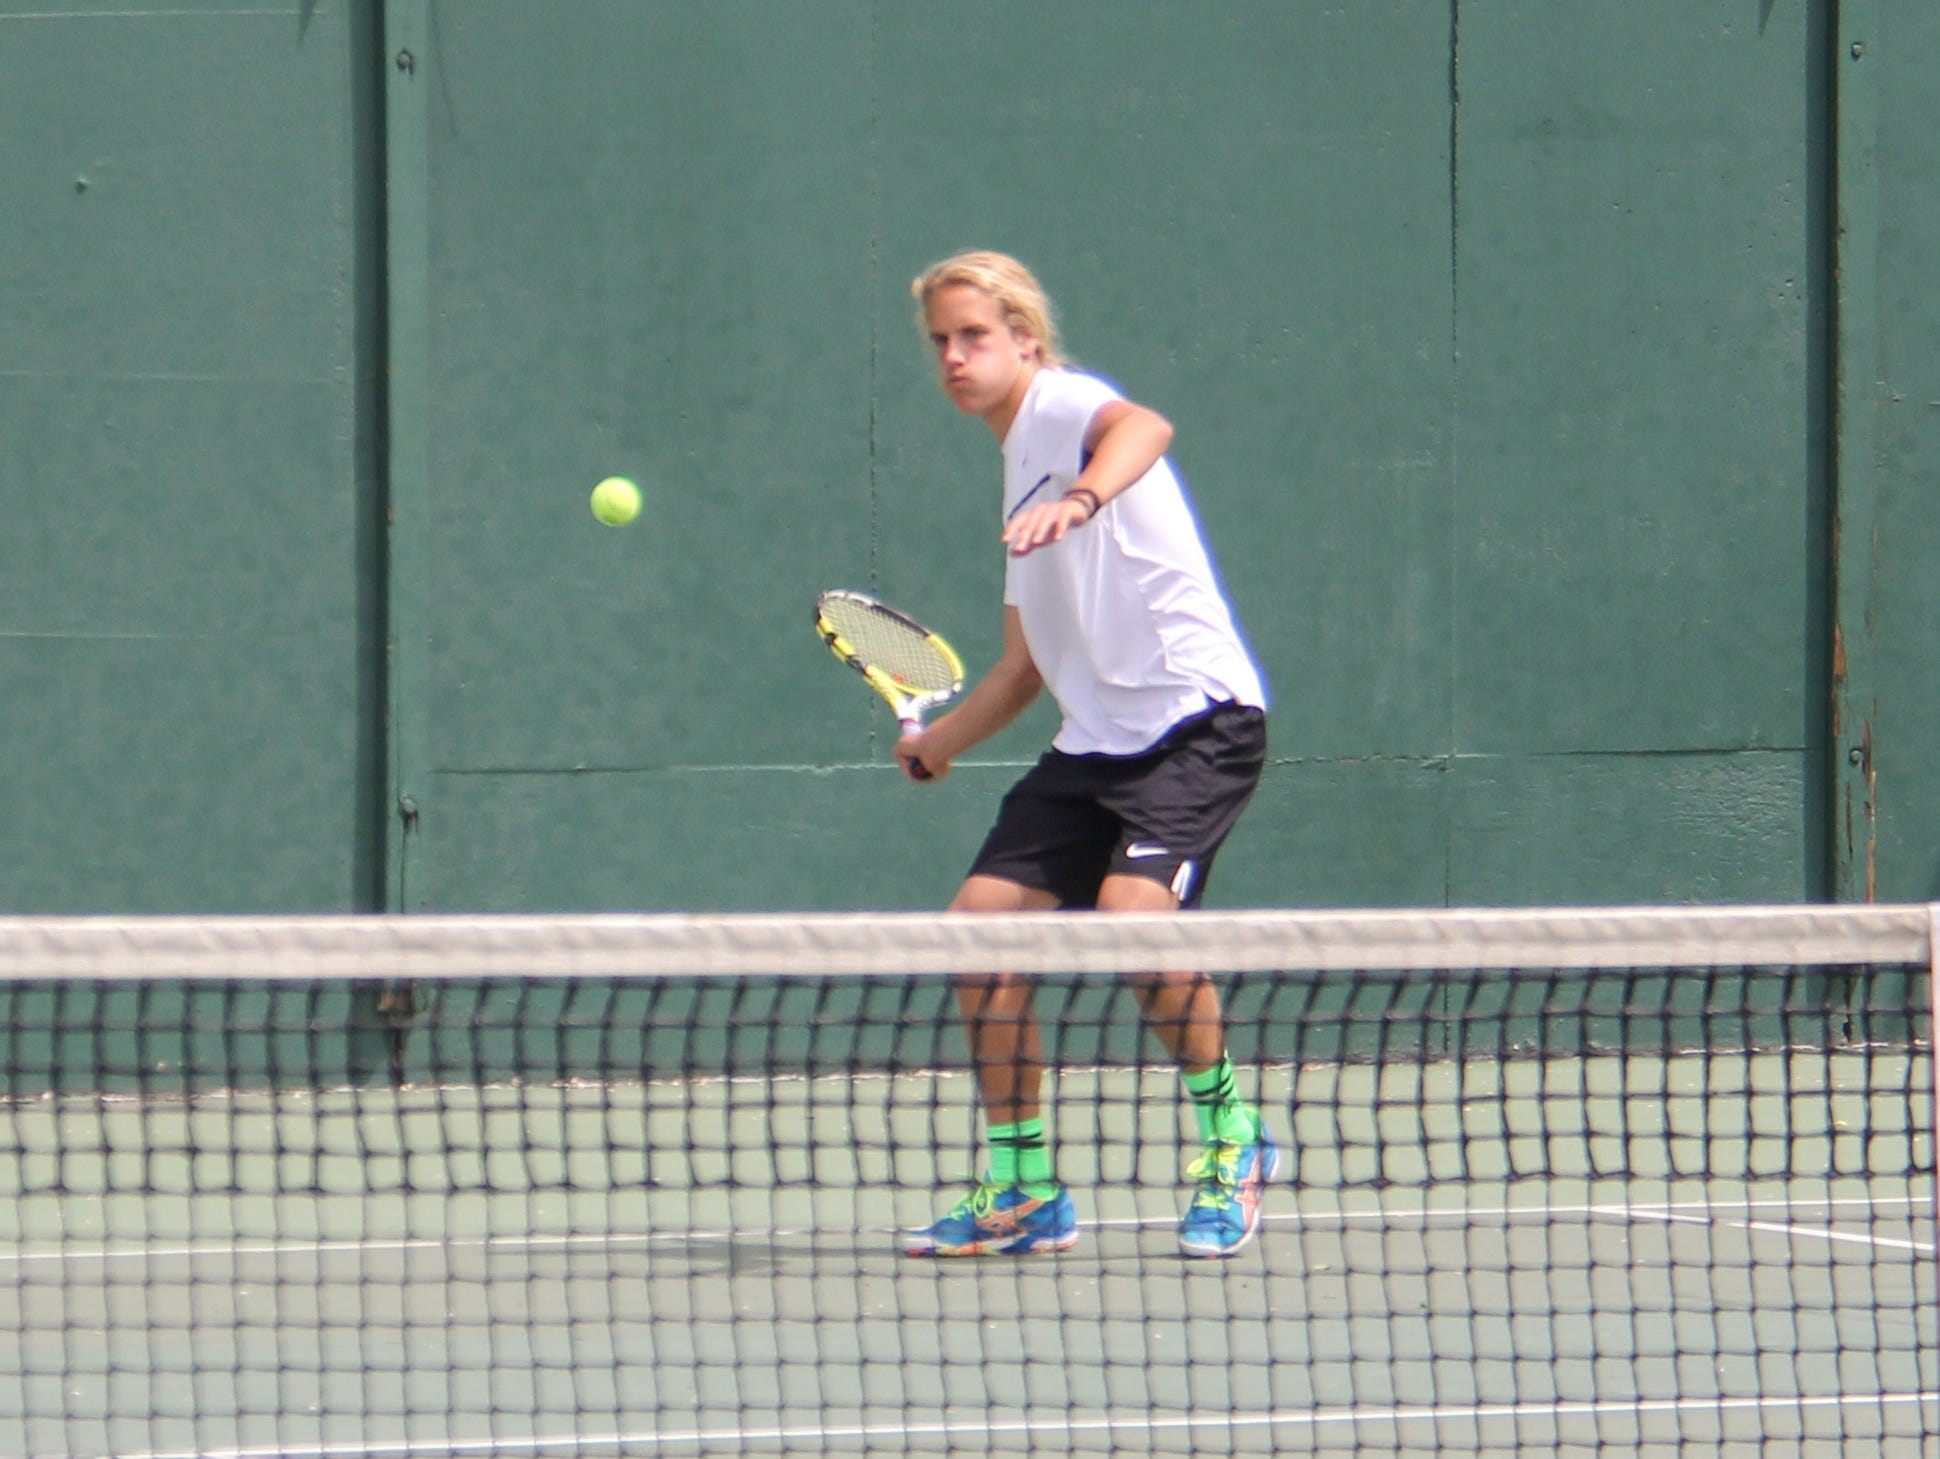 Austin Hardy prepares to hit a forehand during a doubles match last season.